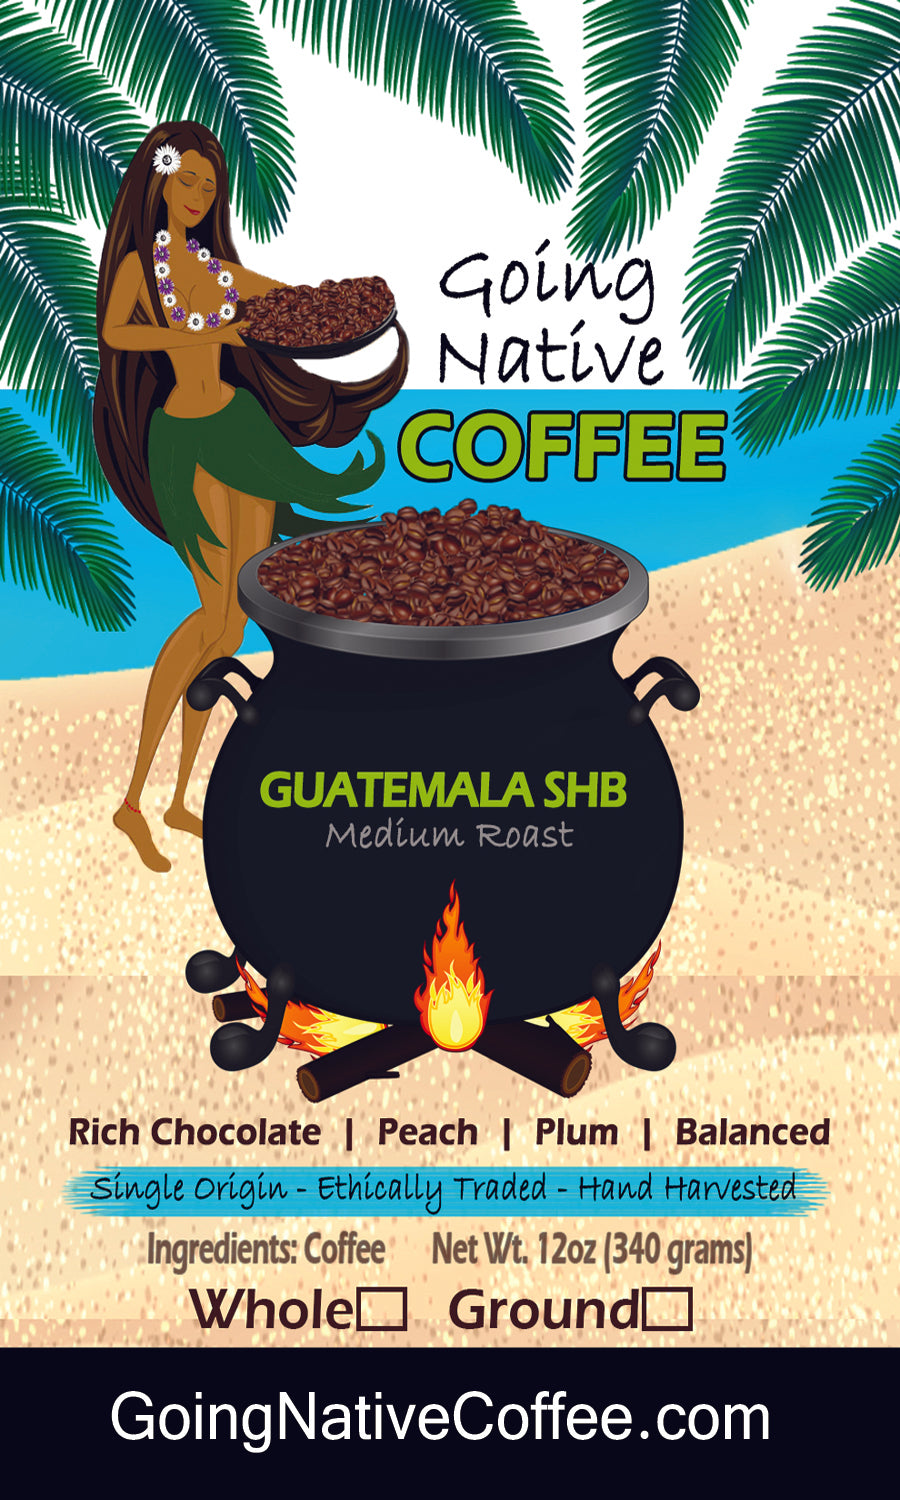 Guatamala SHB Subscription - Going Native Coffee Club